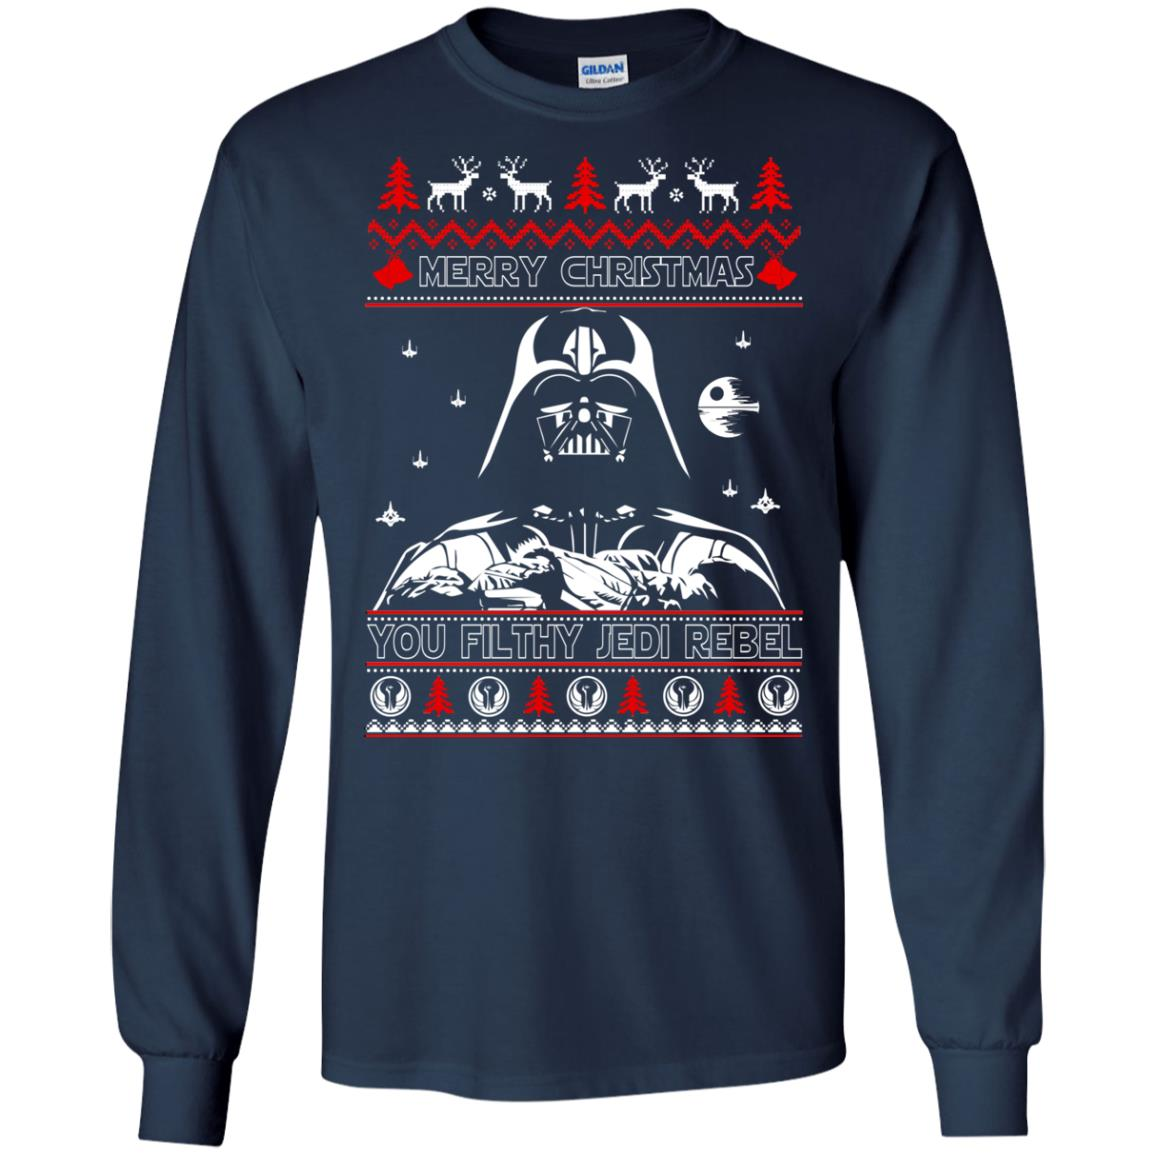 image 1785 - Darth Vader Merry Christmas You Filthy Jedi Rebel Ugly Sweater, Shirt